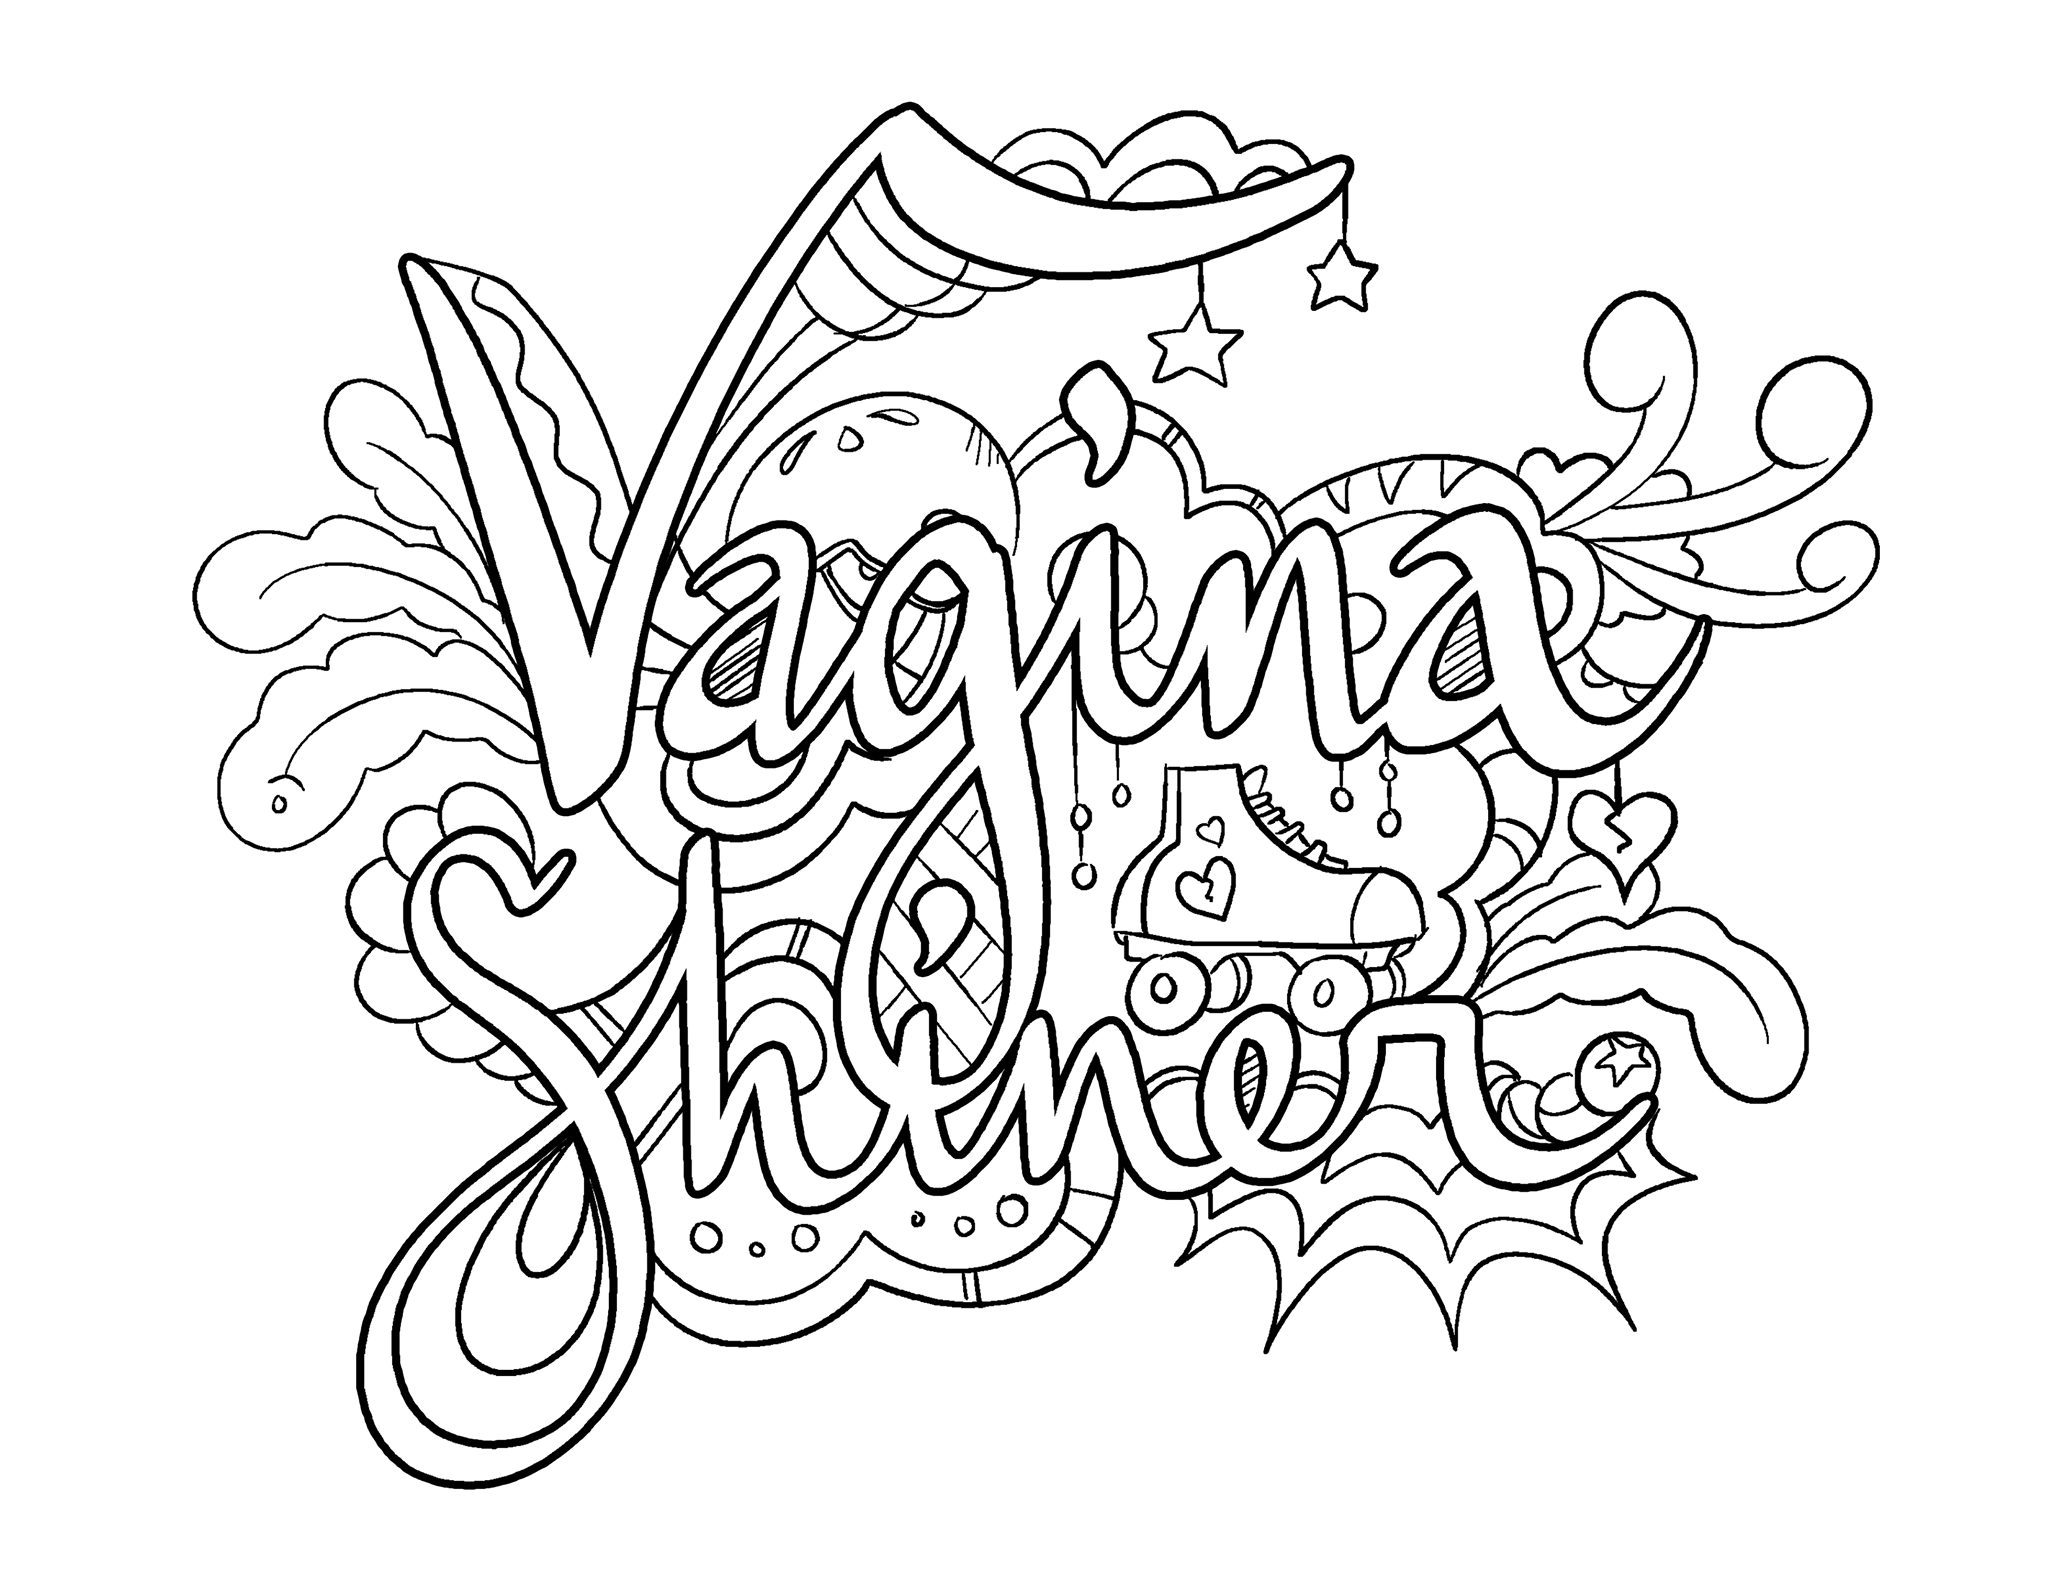 Vagina Shiner - Coloring Page by Colorful Language © 2015. Posted ...